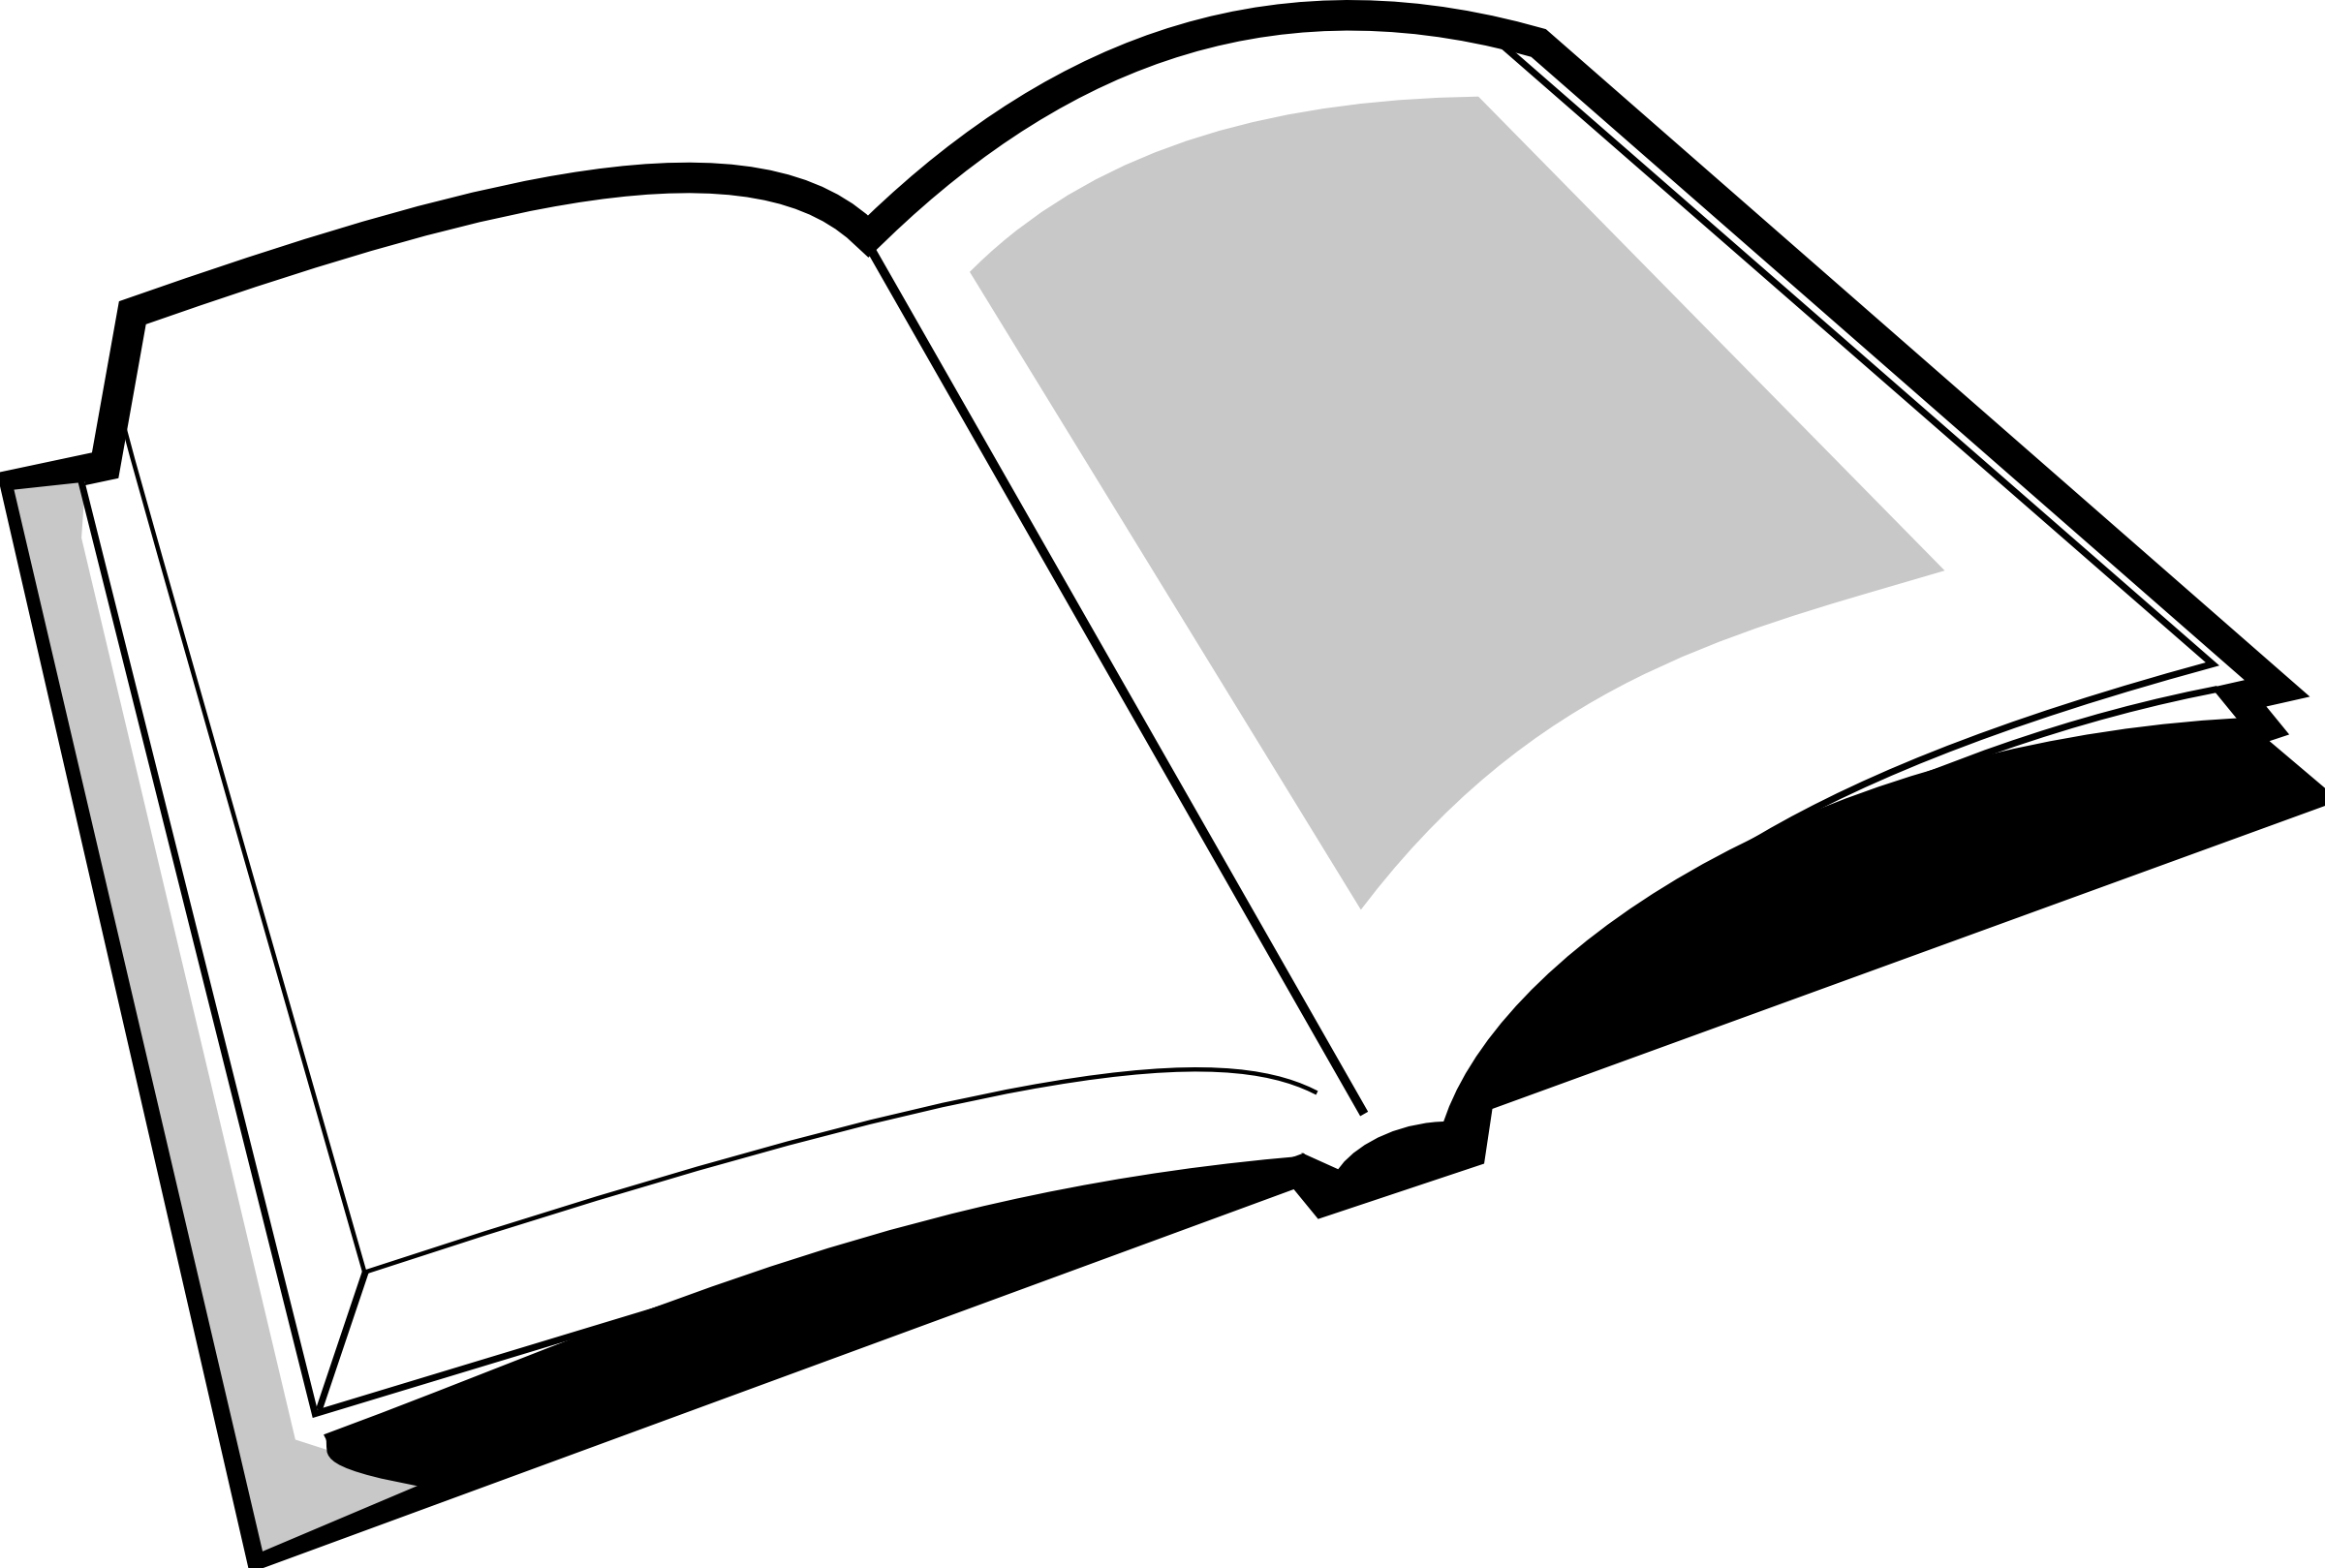 2400x1619 Book Black And White Free Open Book Clipart Clip Art Images 6